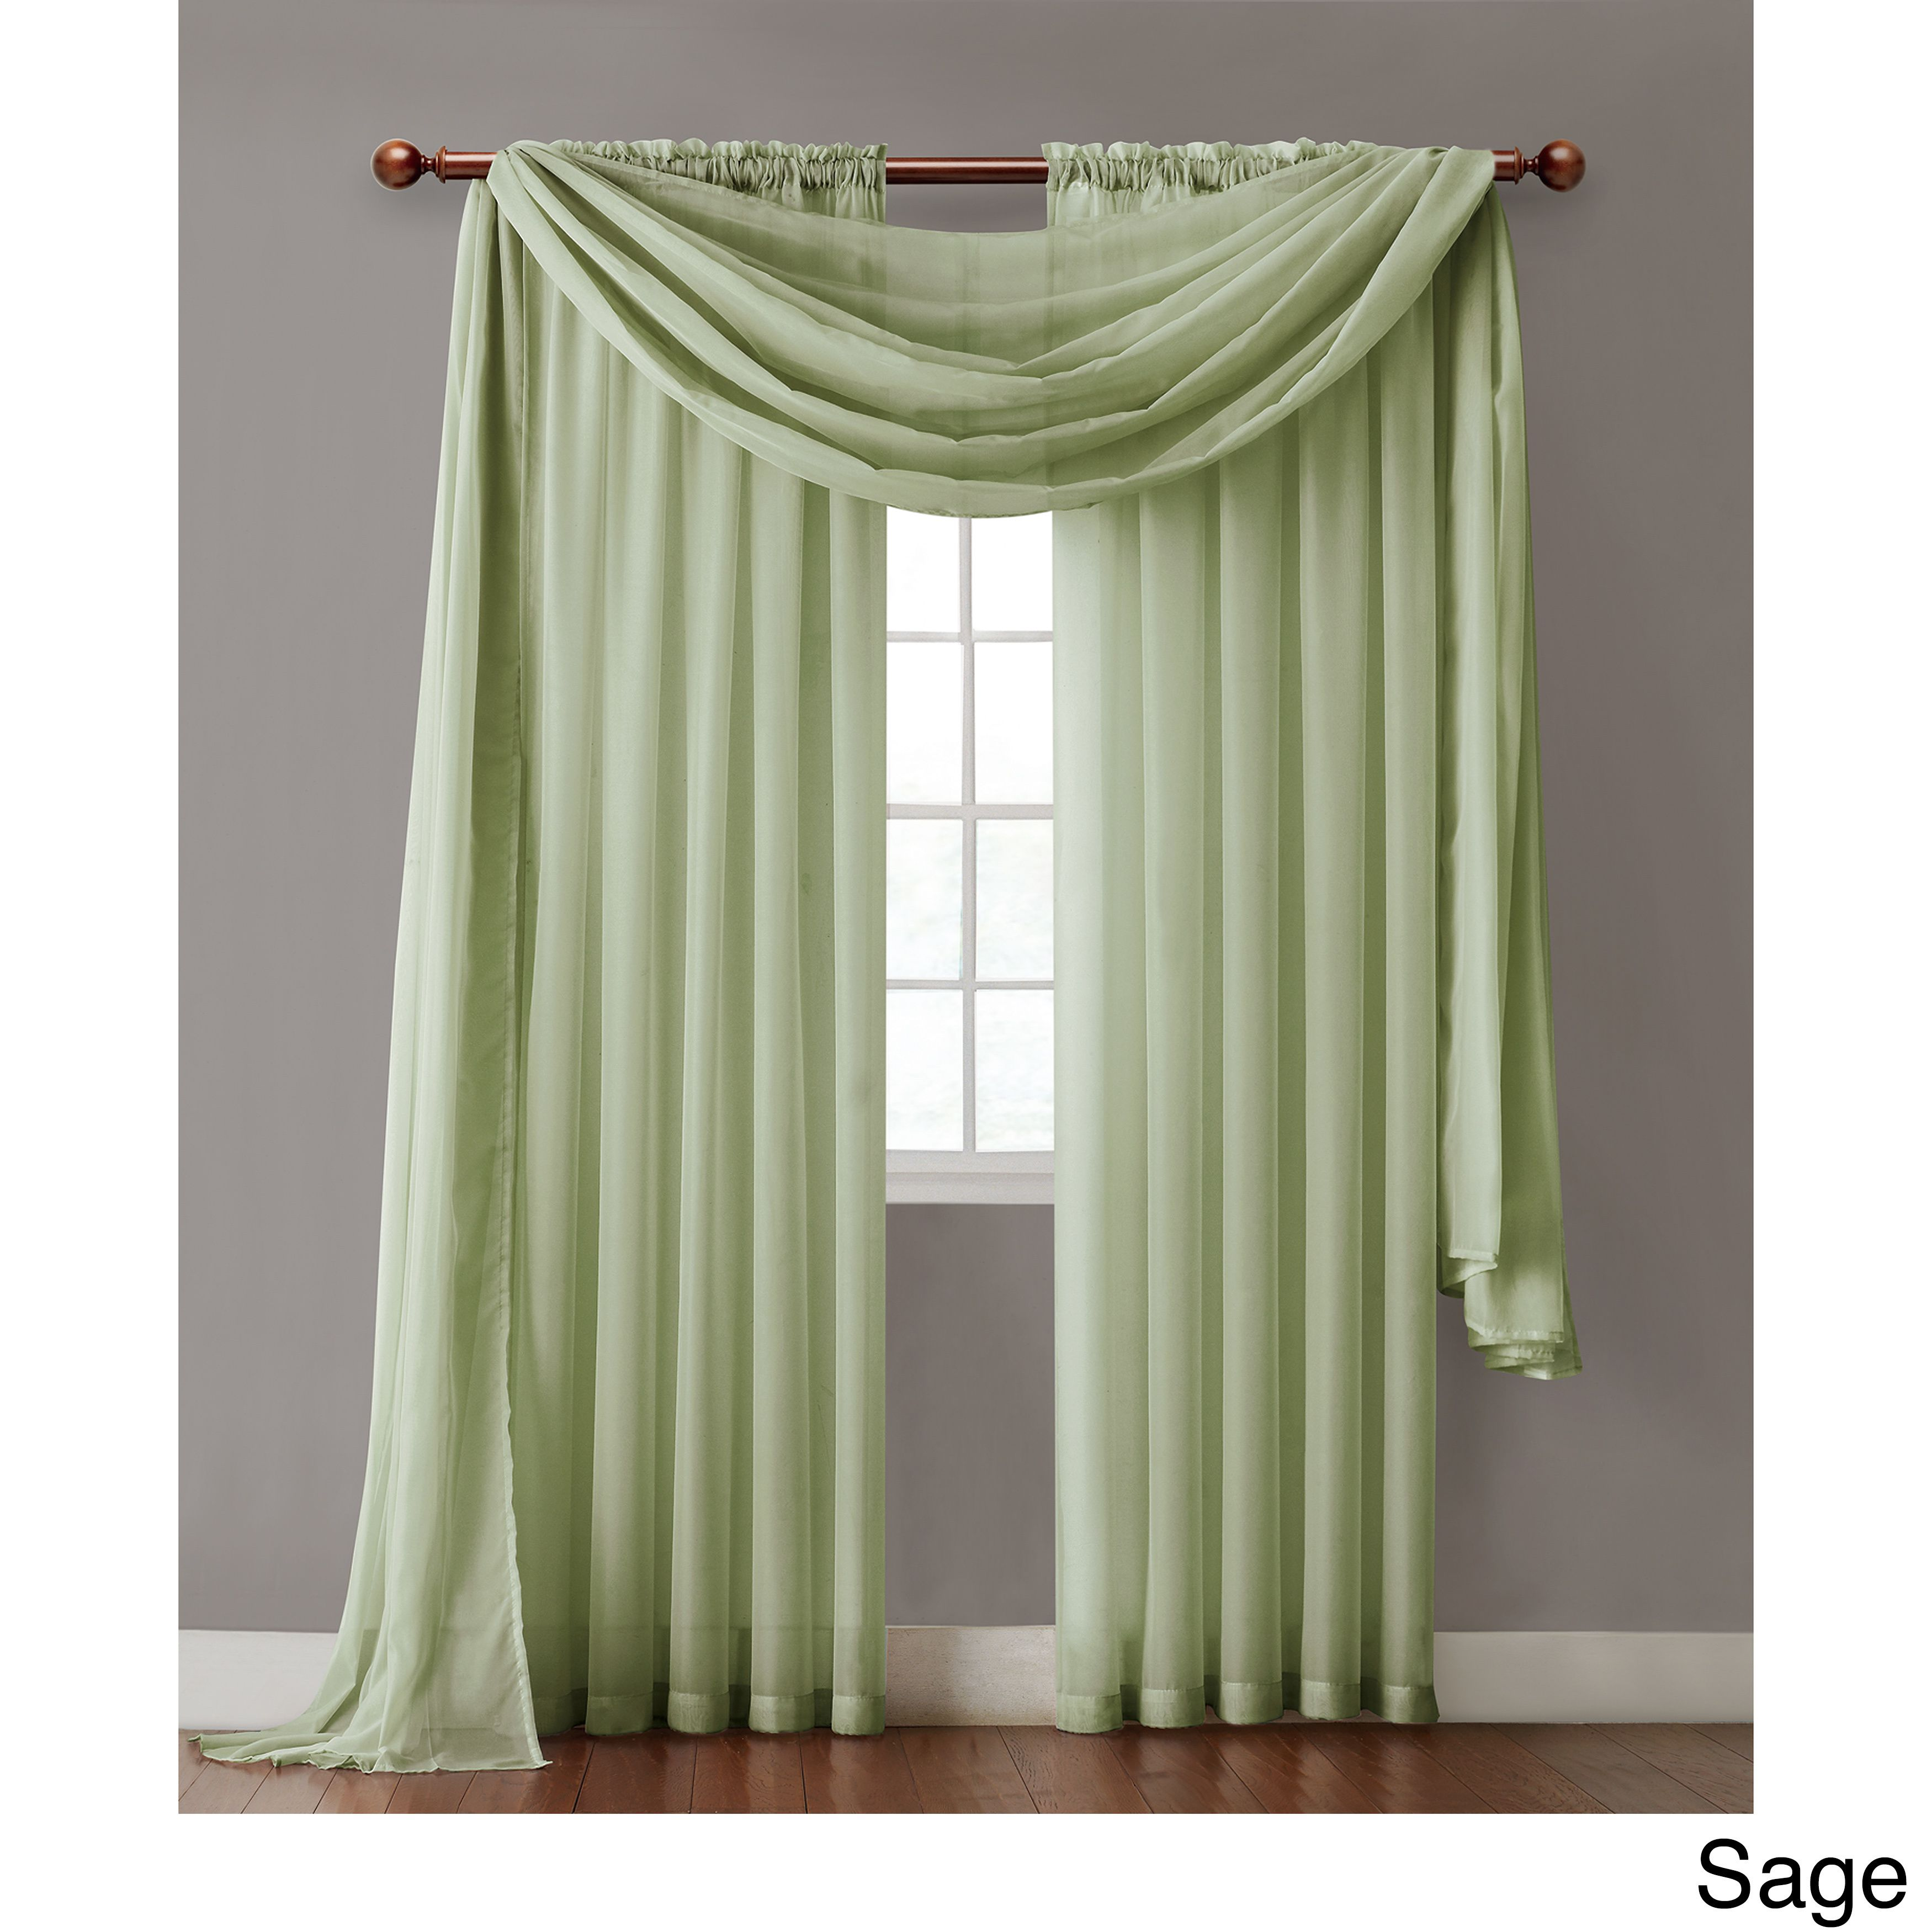 martha ideas of charter curtain home wear curtains roll vs drapes stewart image